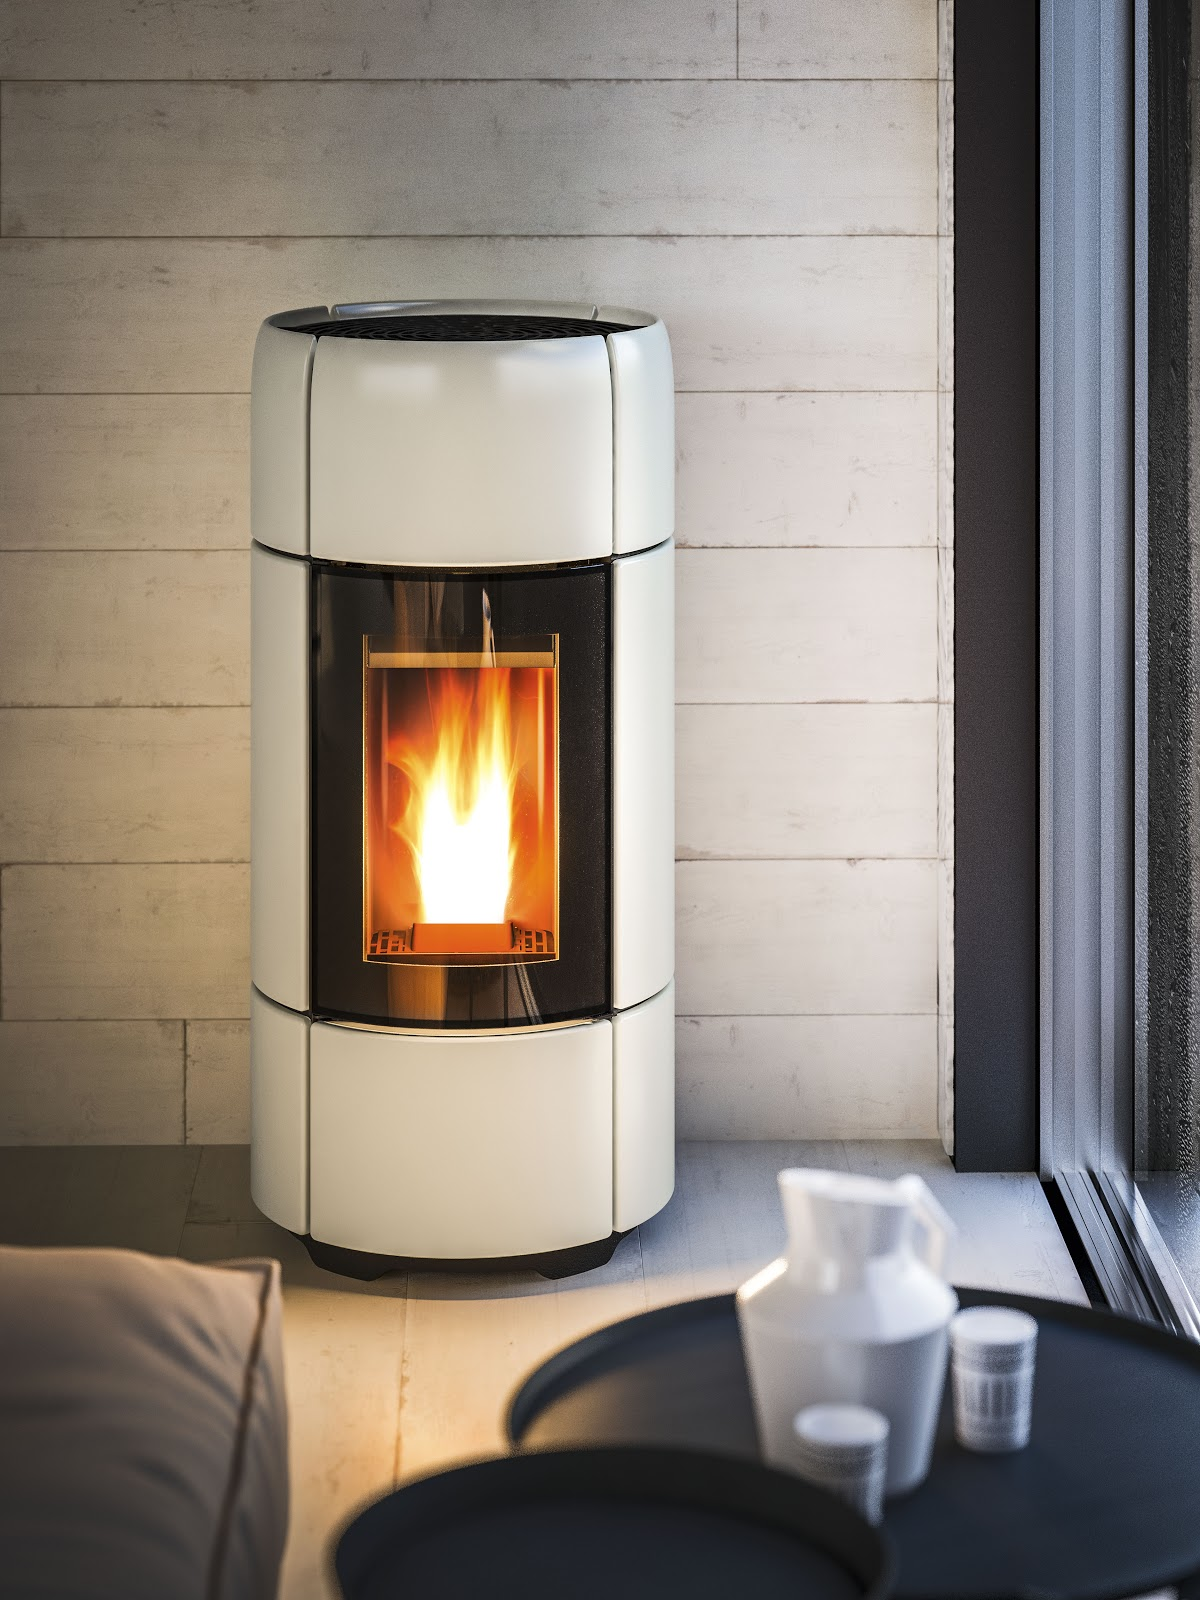 Specflue Recognised as a Finalist for the Pellet or Wood Chip Appliance Category